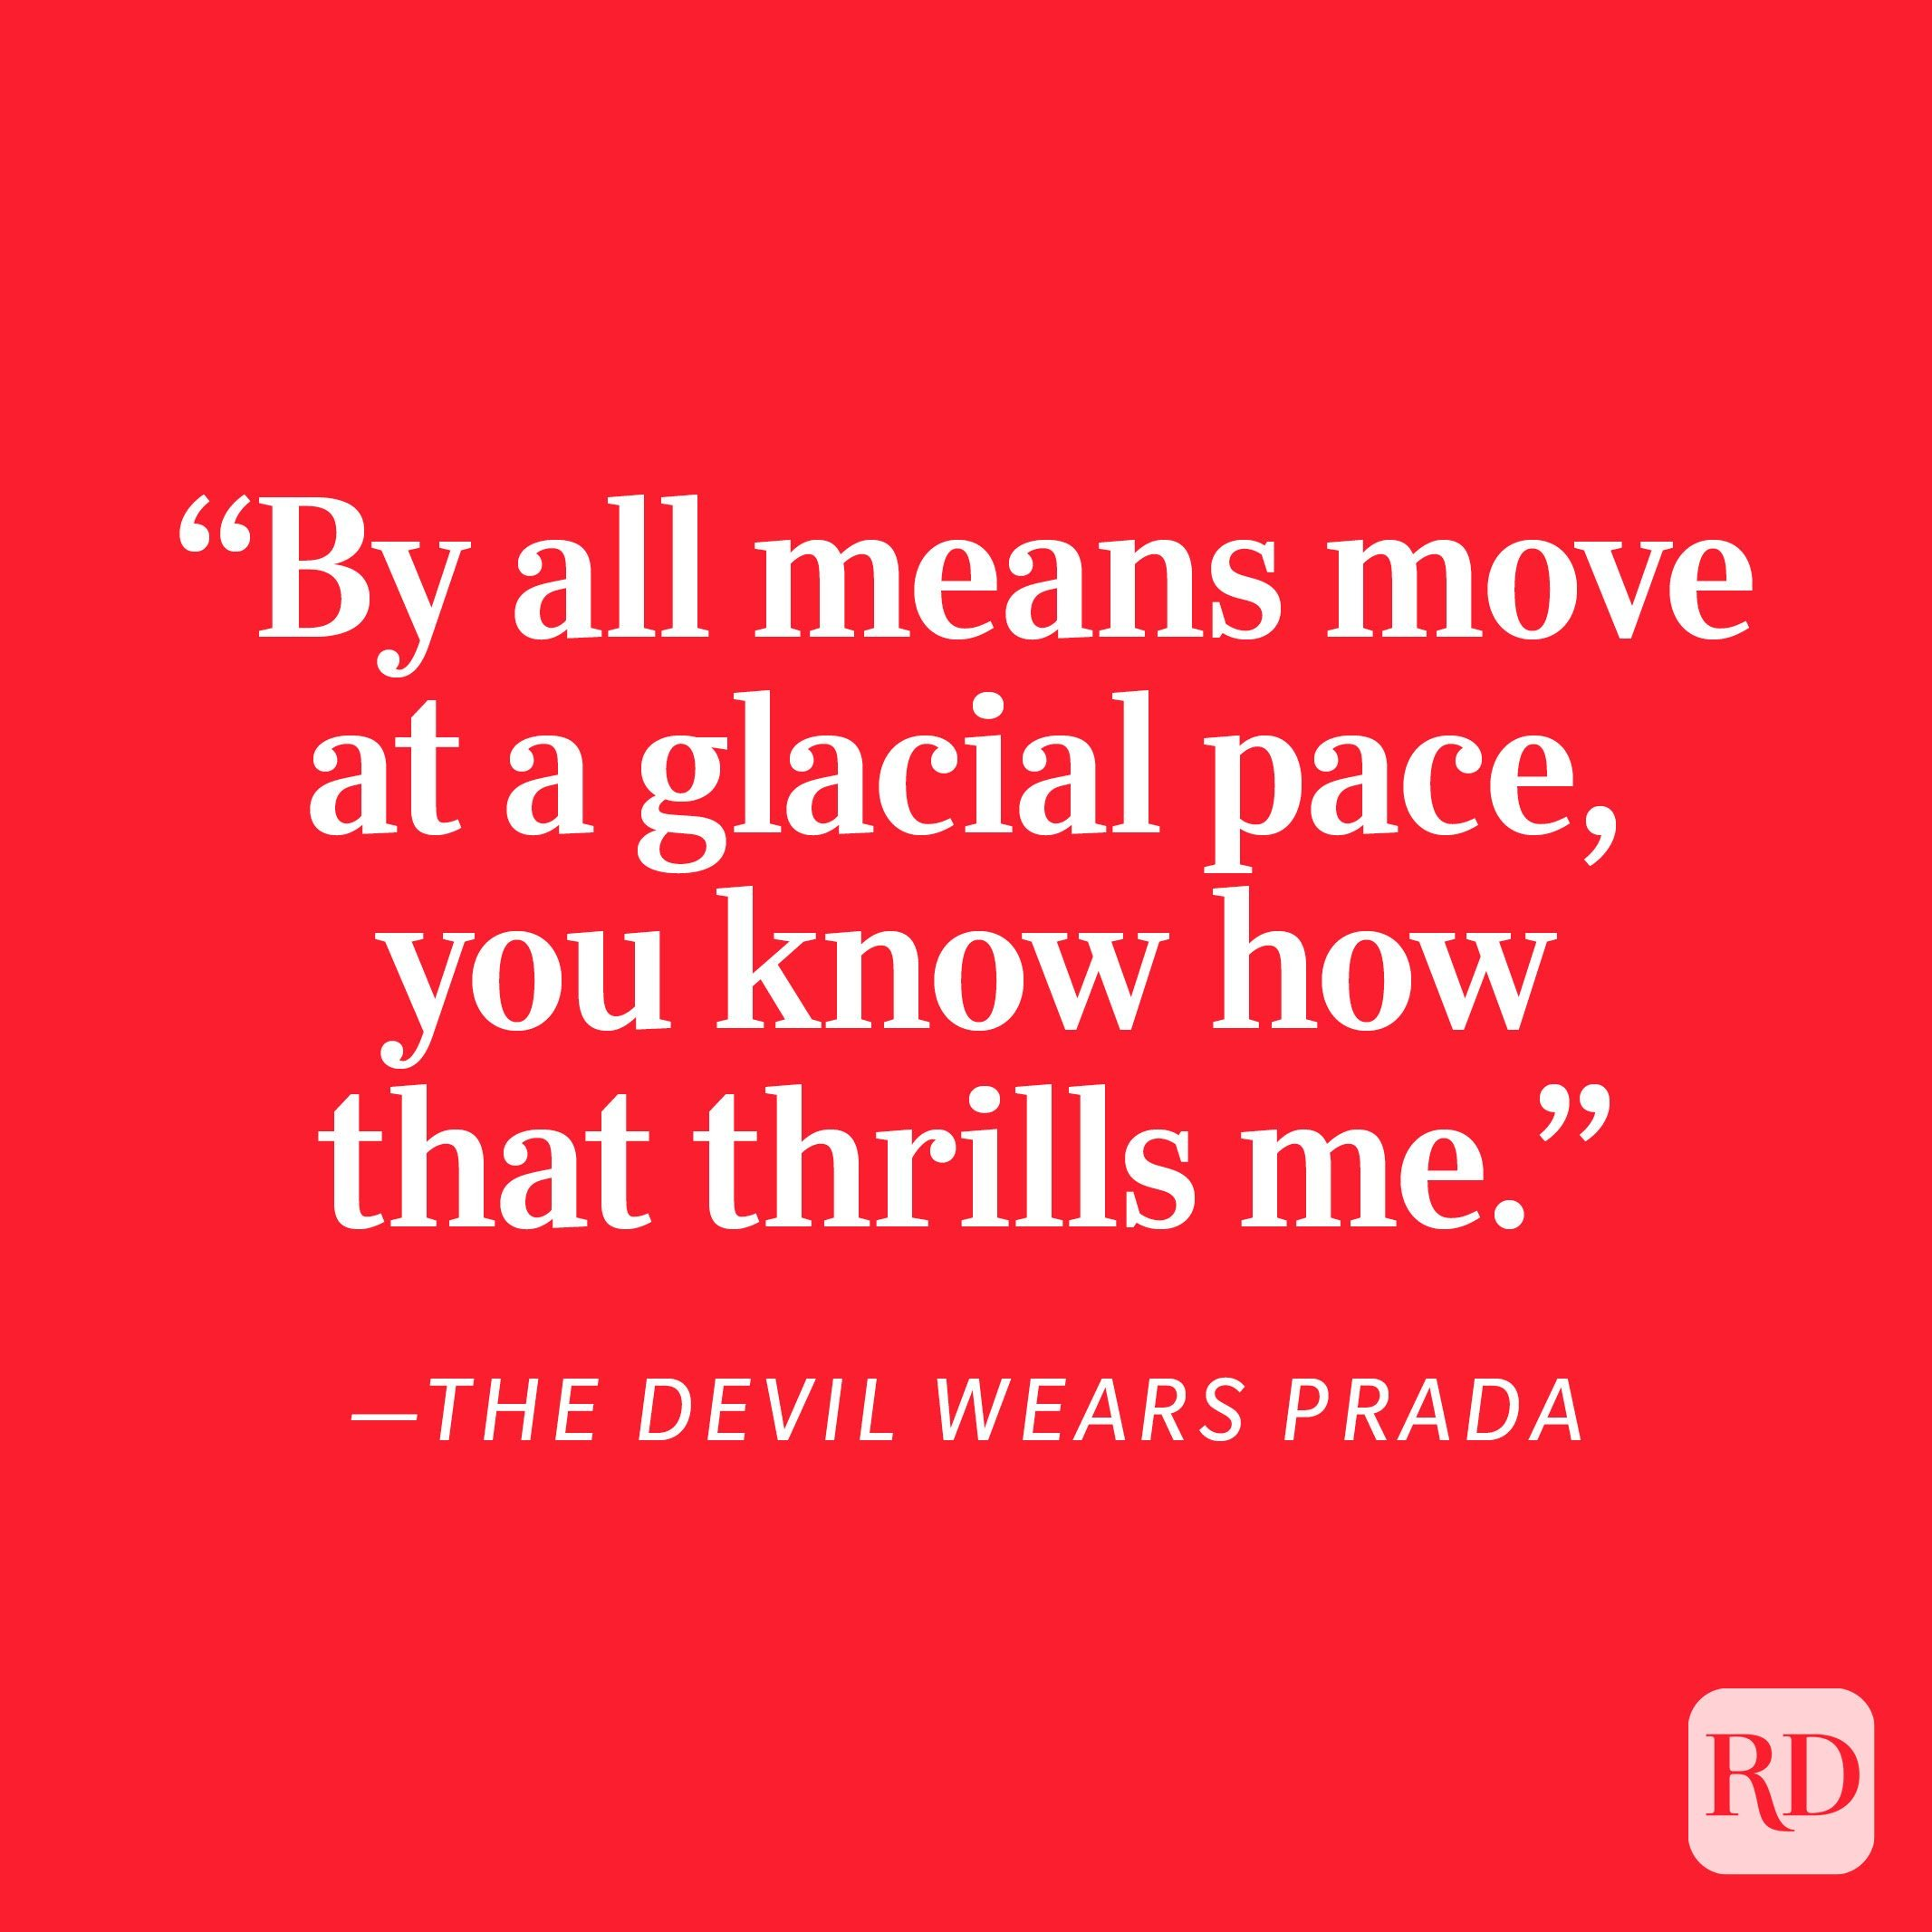 """The Devil Wears Prada """"By all means move at a glacial pace, you know how that thrills me."""""""